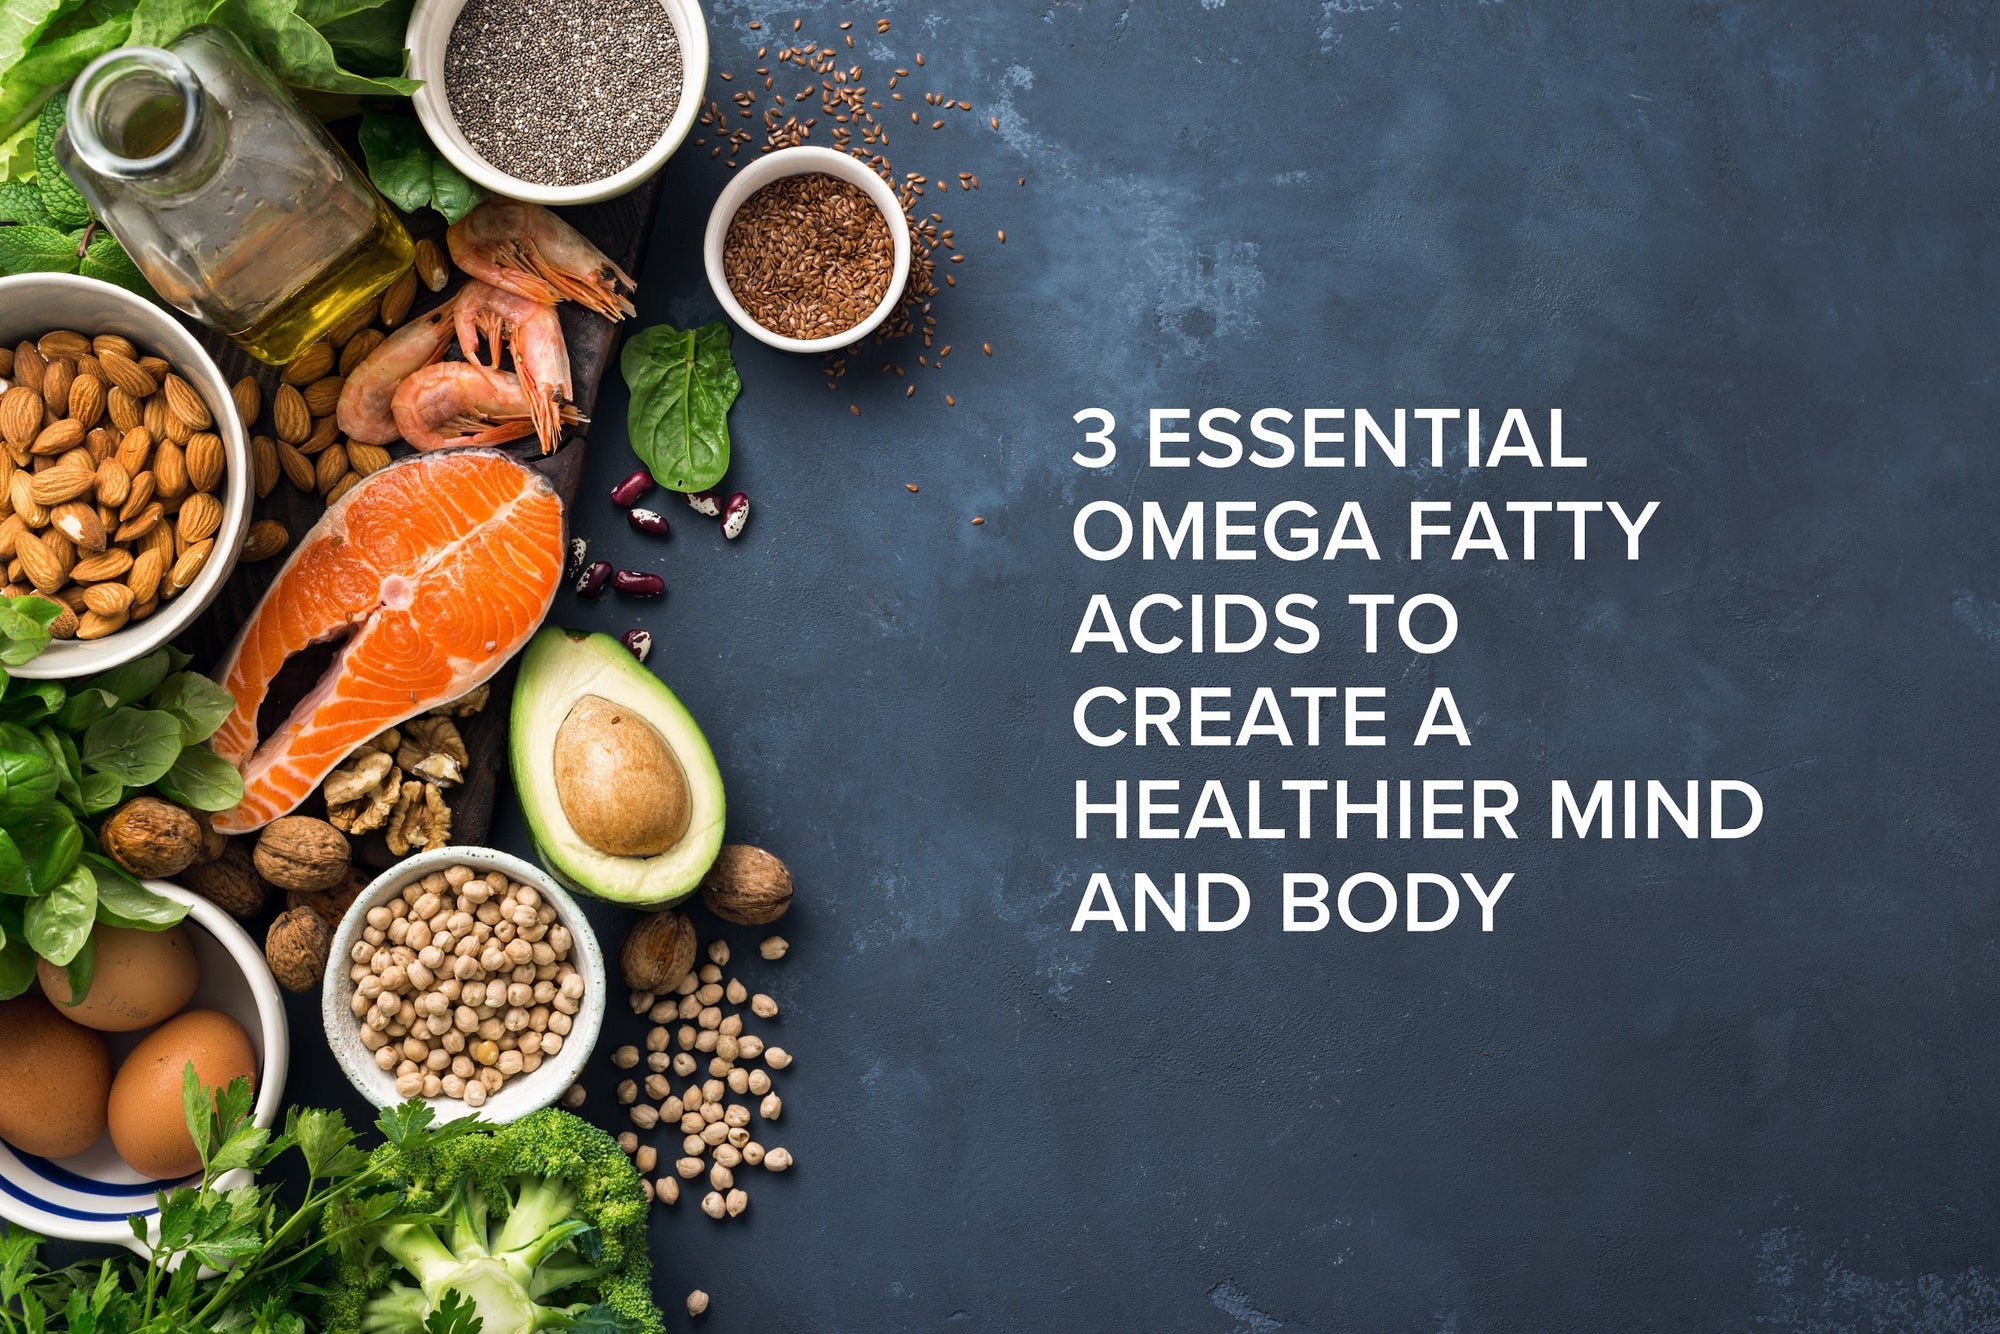 3 Essential Omega Fatty Acids to Create a Healthier Mind and Body